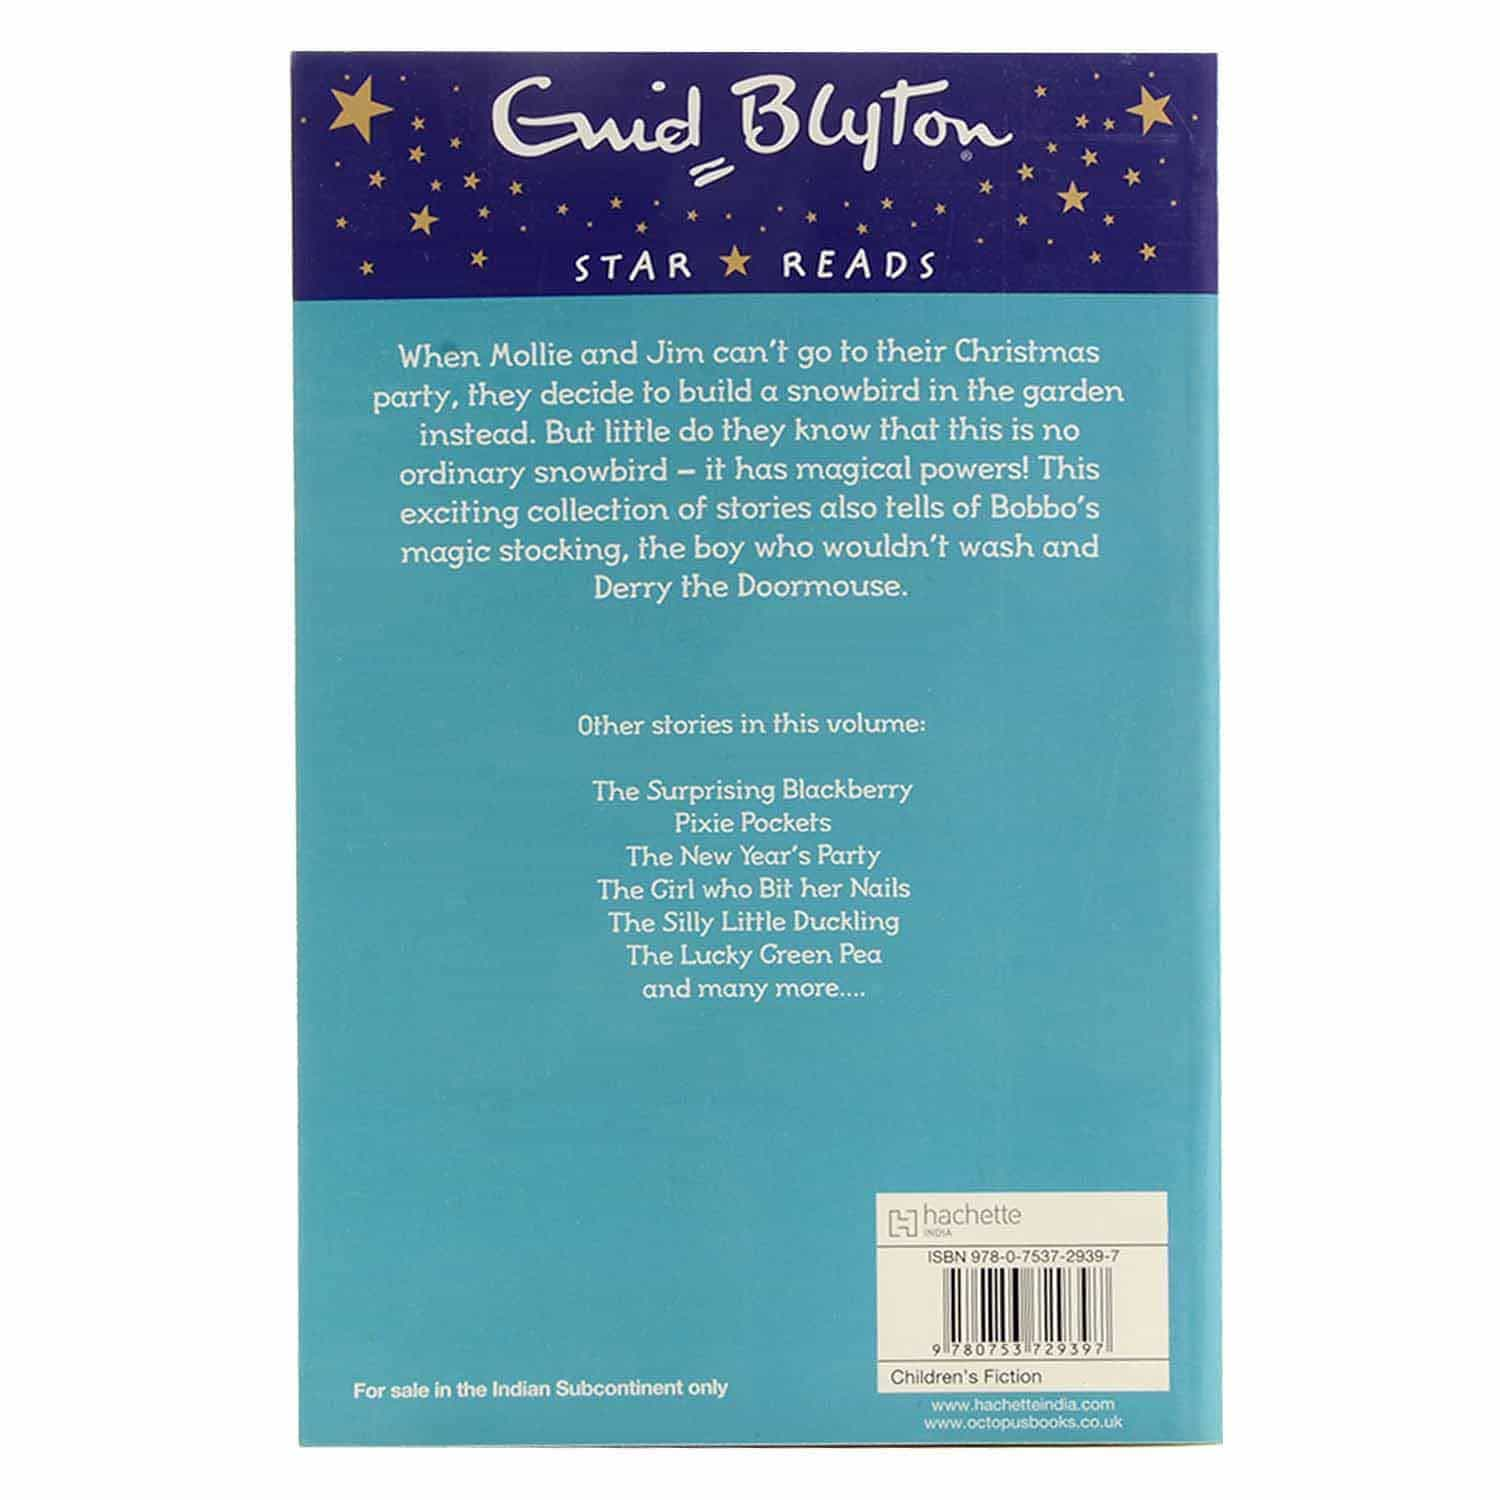 Enid Blyton - The Magic Snowbird and Other Stories